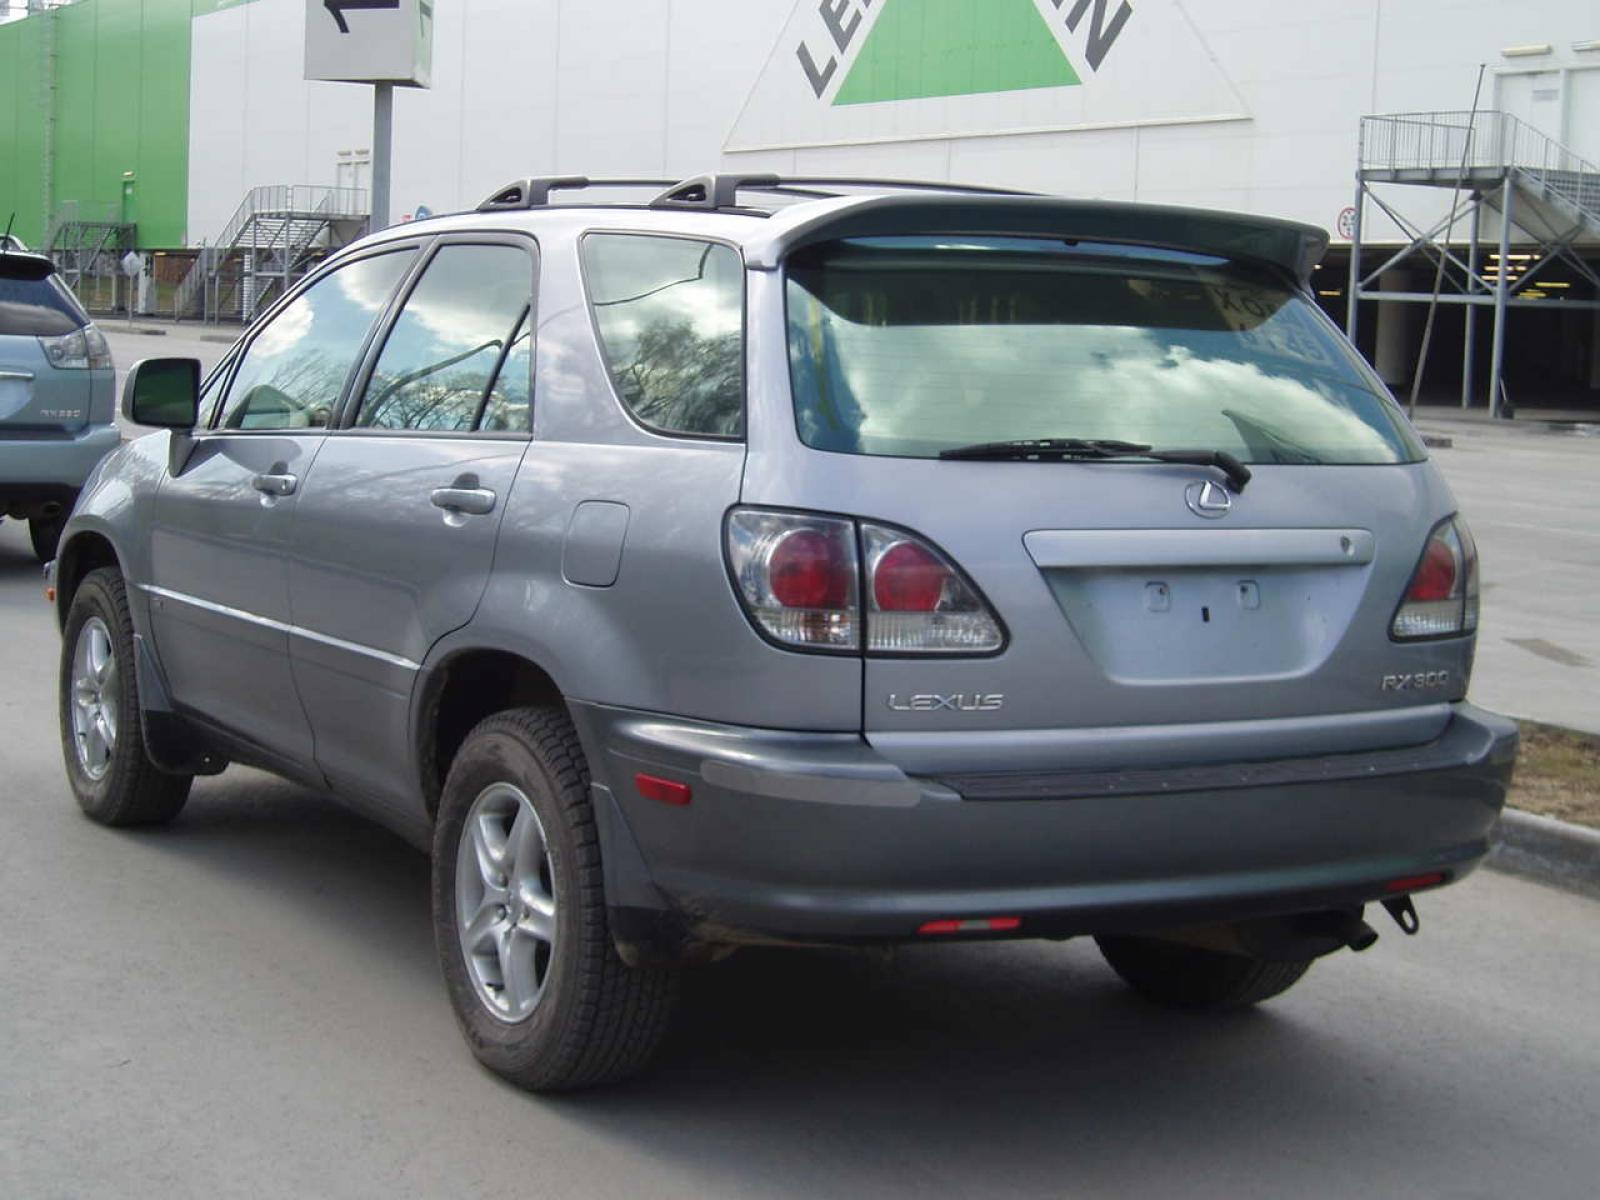 2002 Lexus RX 300 Information and photos ZombieDrive